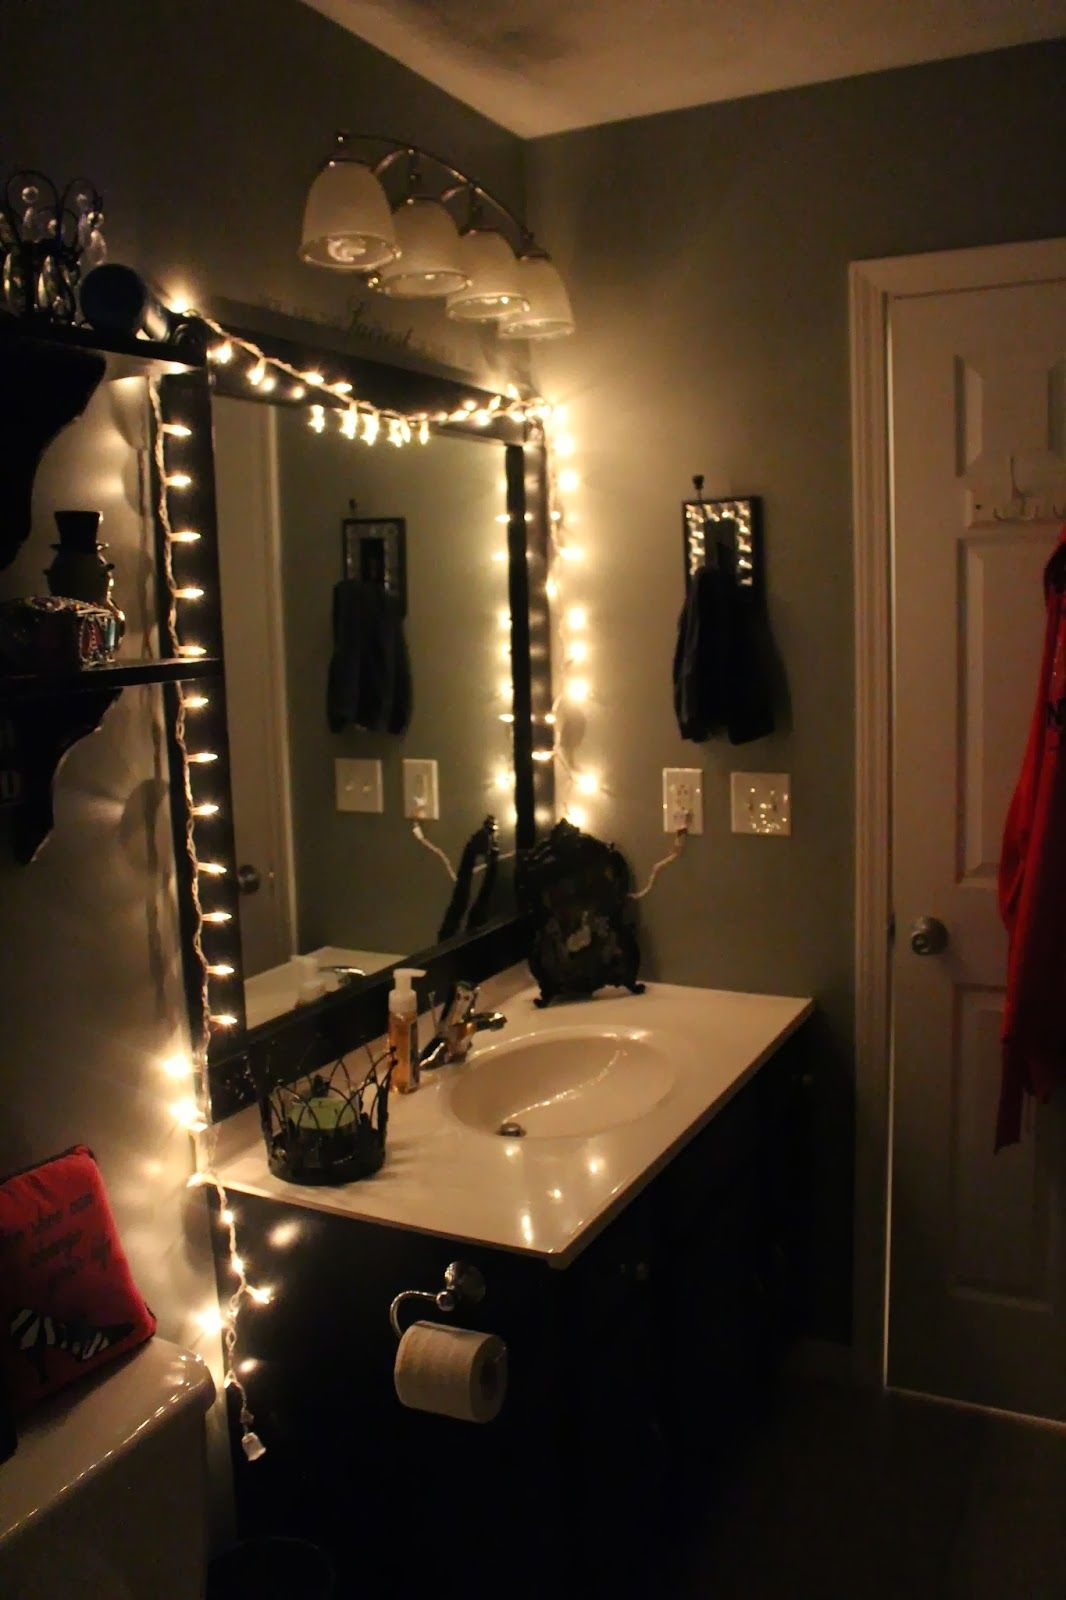 Apartment Decorating Ideas For Women bathroom rennovation, black and white, christmas lights, womens